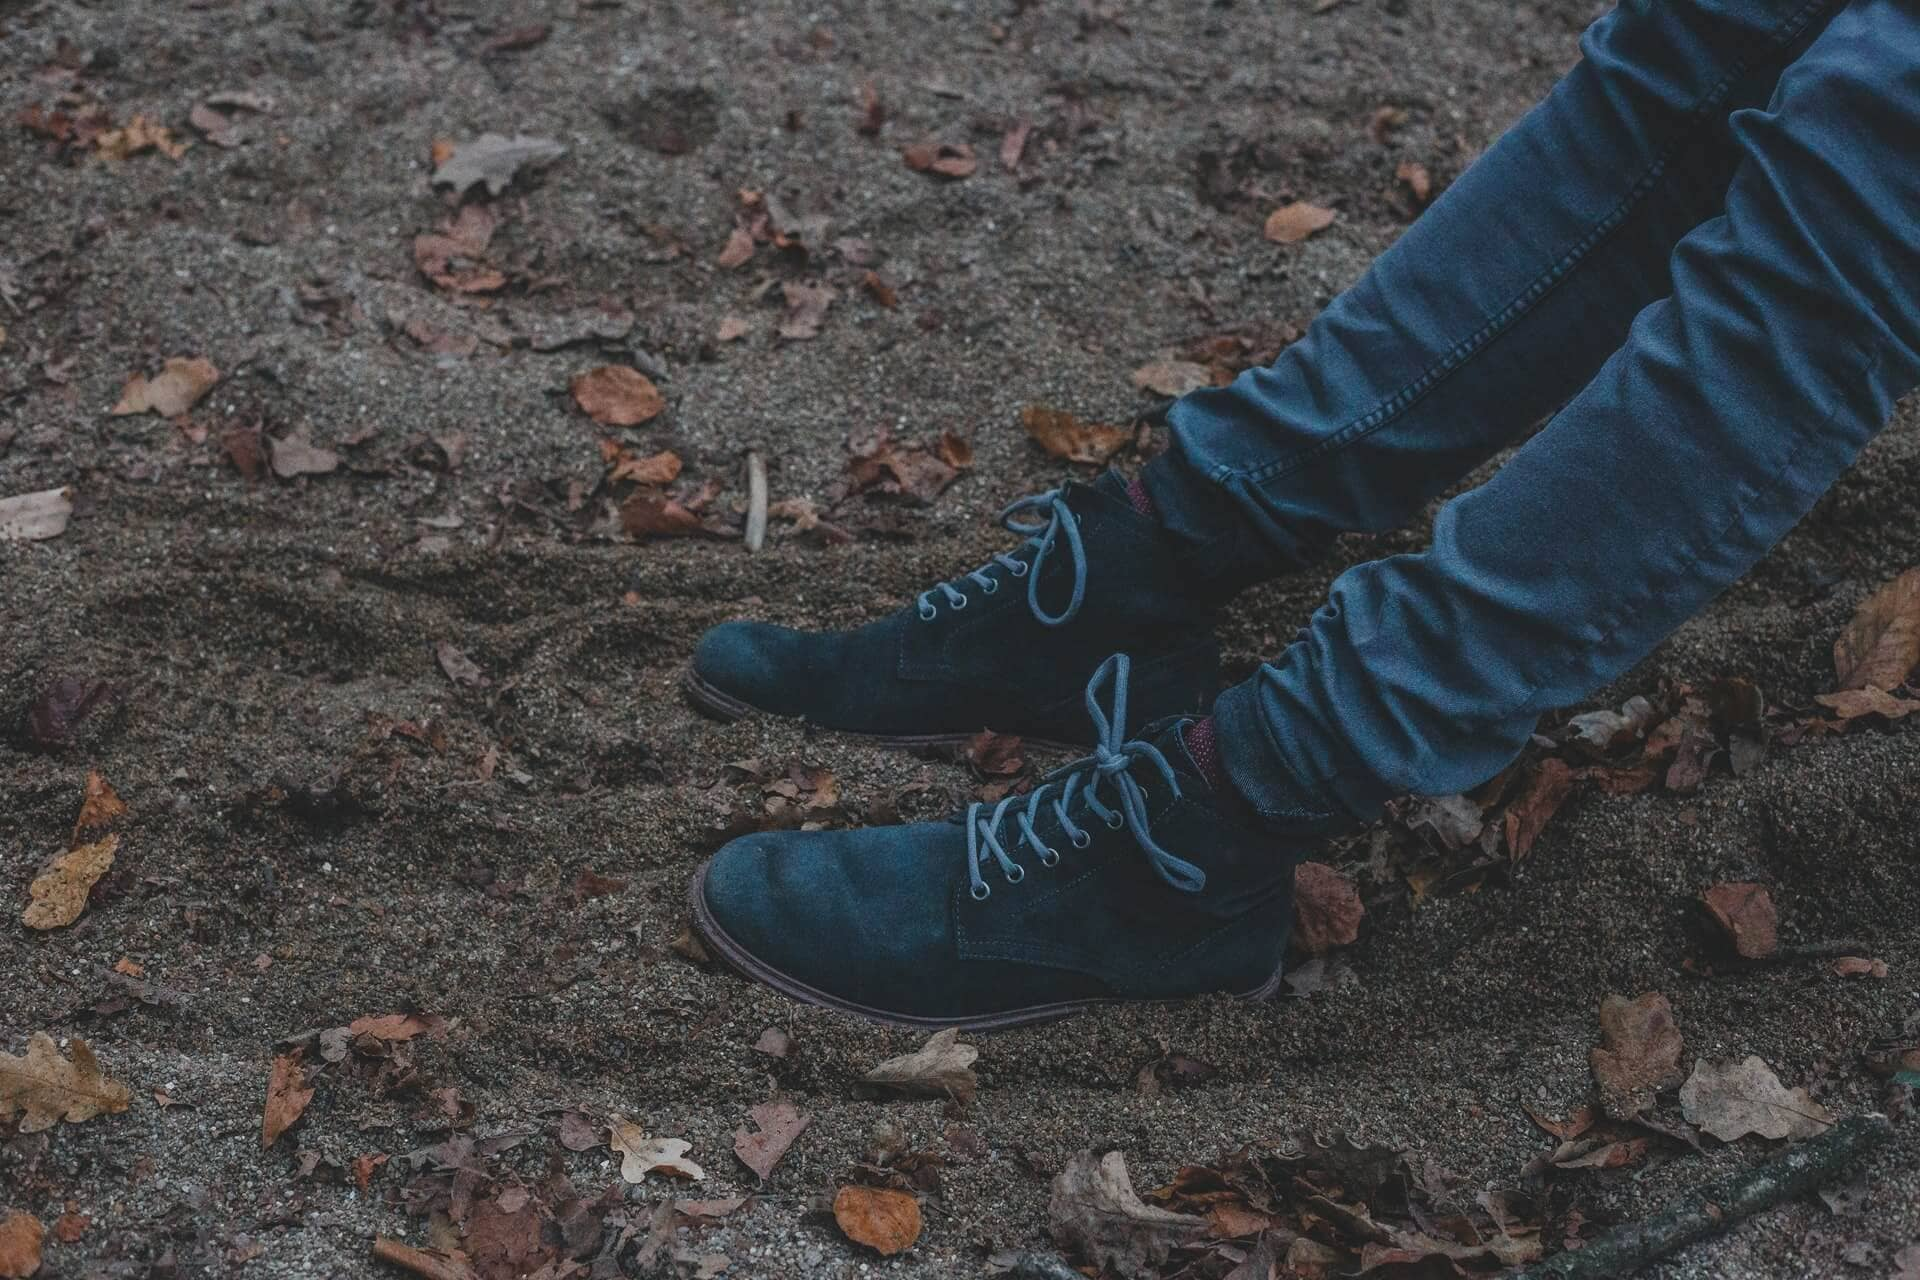 A man's legs wearing jeans and boots